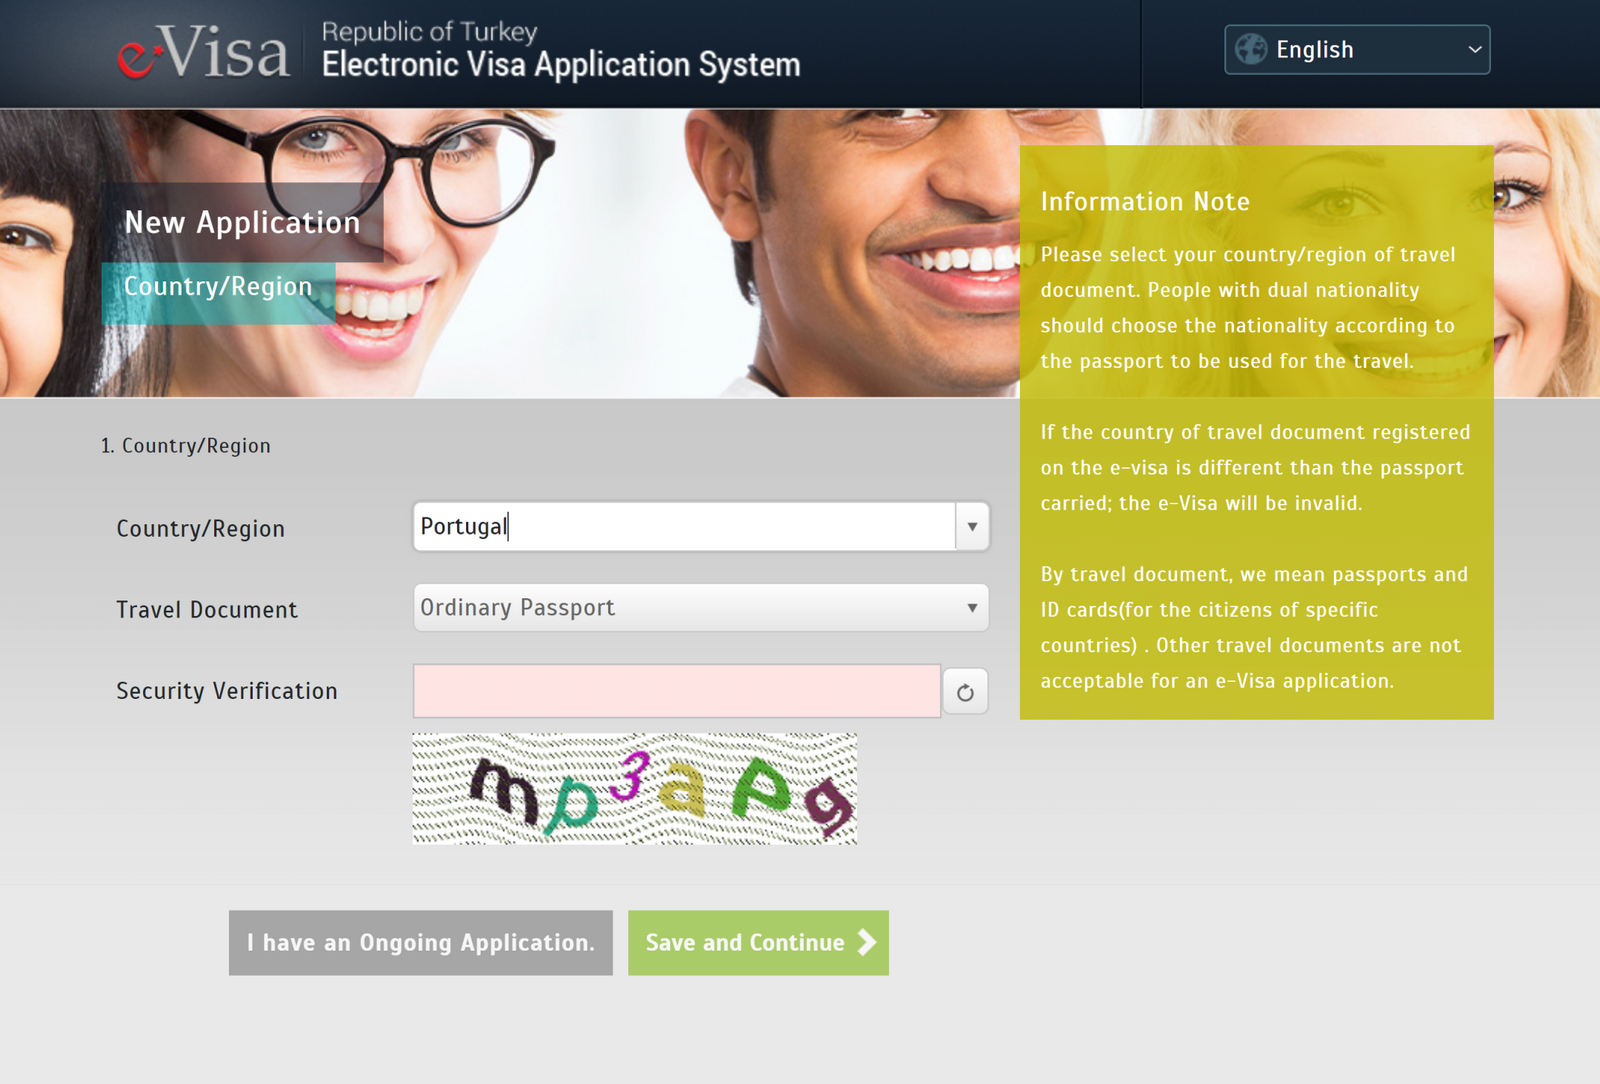 Step By Step Guide to Apply for a Turkey e-Visa